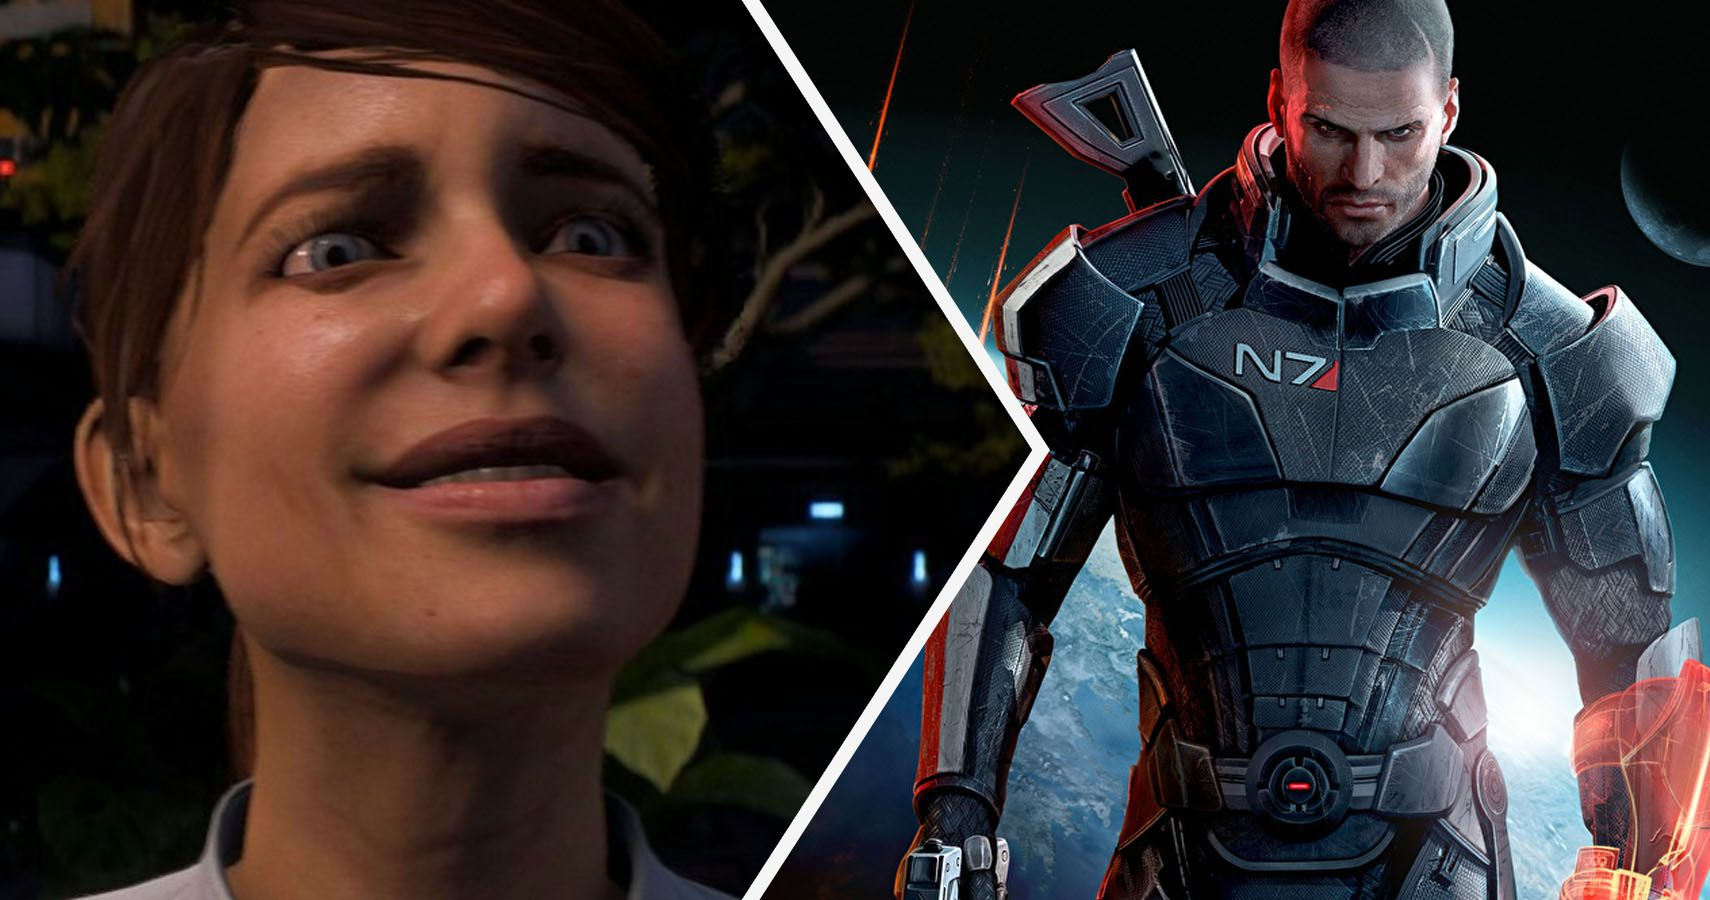 5 Things From Andromeda We Want In Mass Effect 5 (& 5 We Don't)